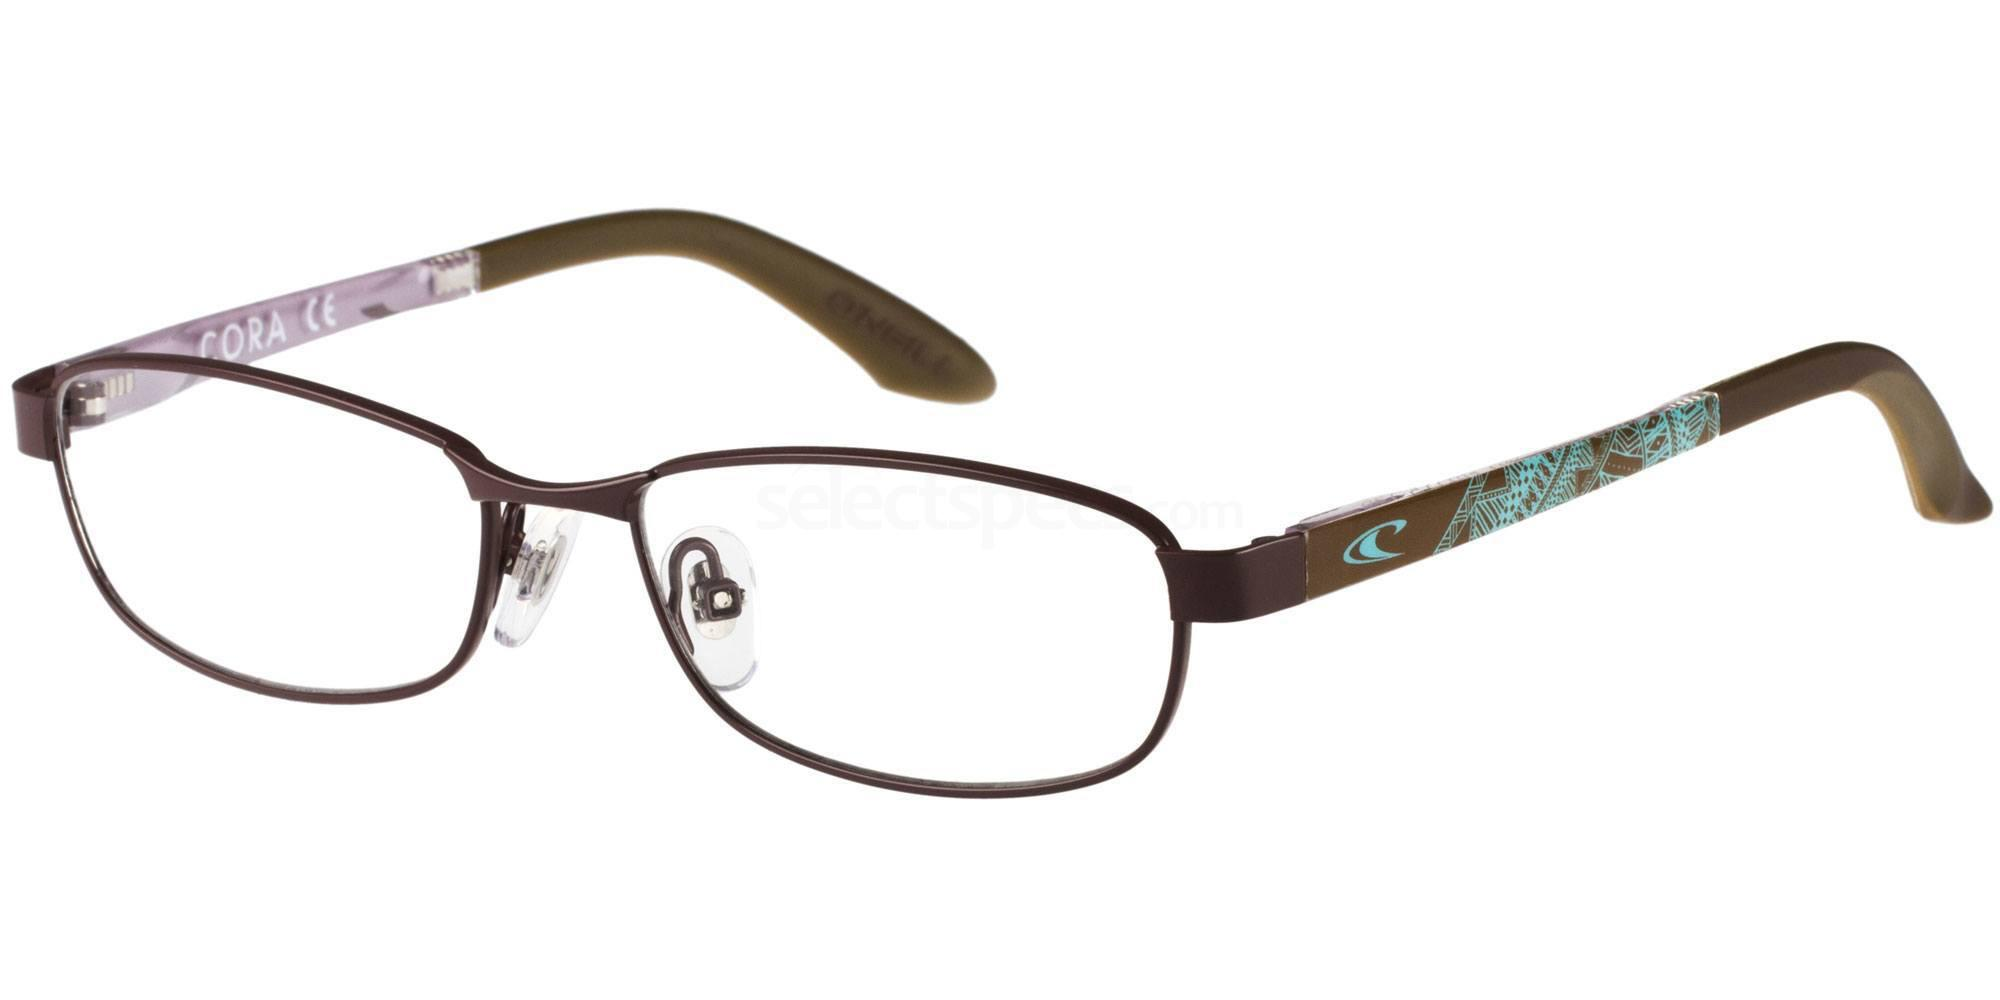 003 ONO-CORA (Small Fit) Glasses, O'Neill